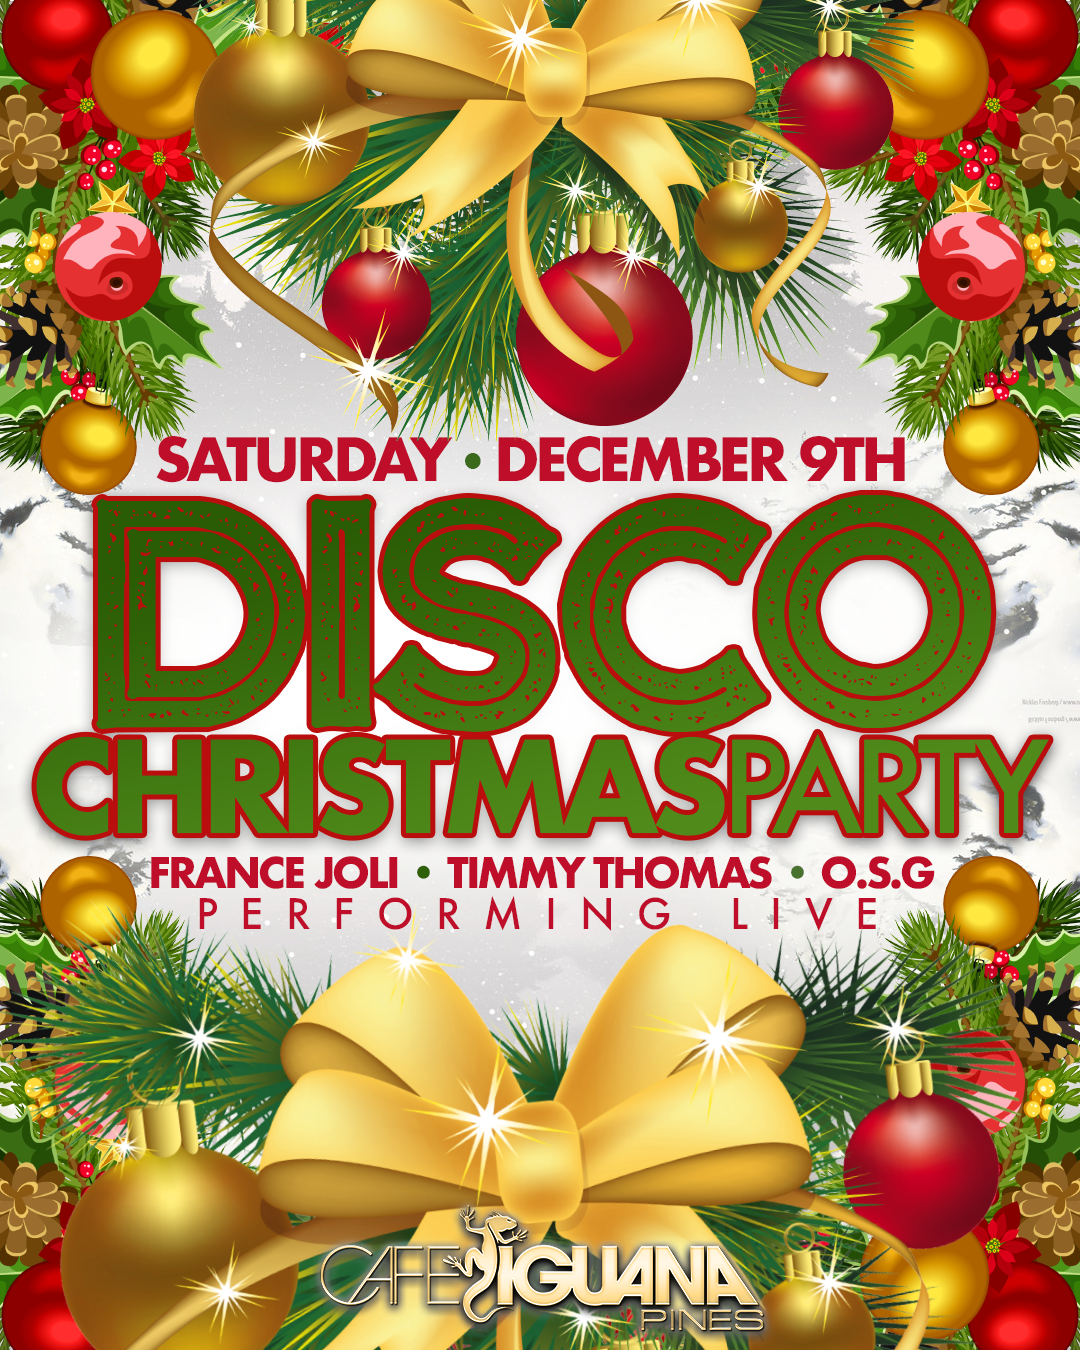 Christmas Disco Clipart.Disco Christmas Party Ft France Joli Timmy Turner Osg